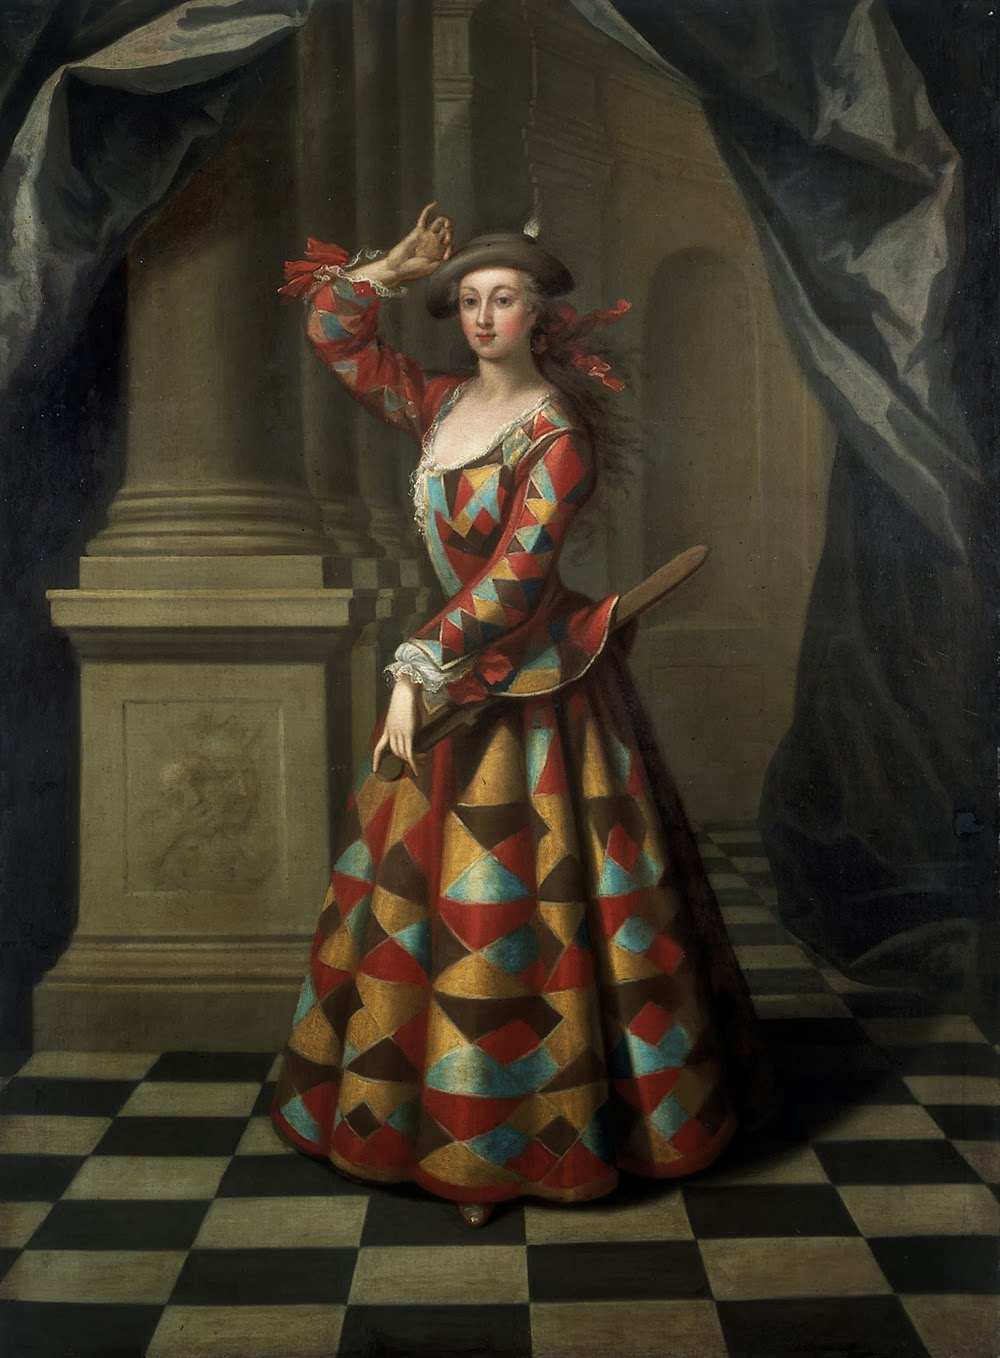 Hester Booth as a Female Harlequin by John Ellys, 1722-25